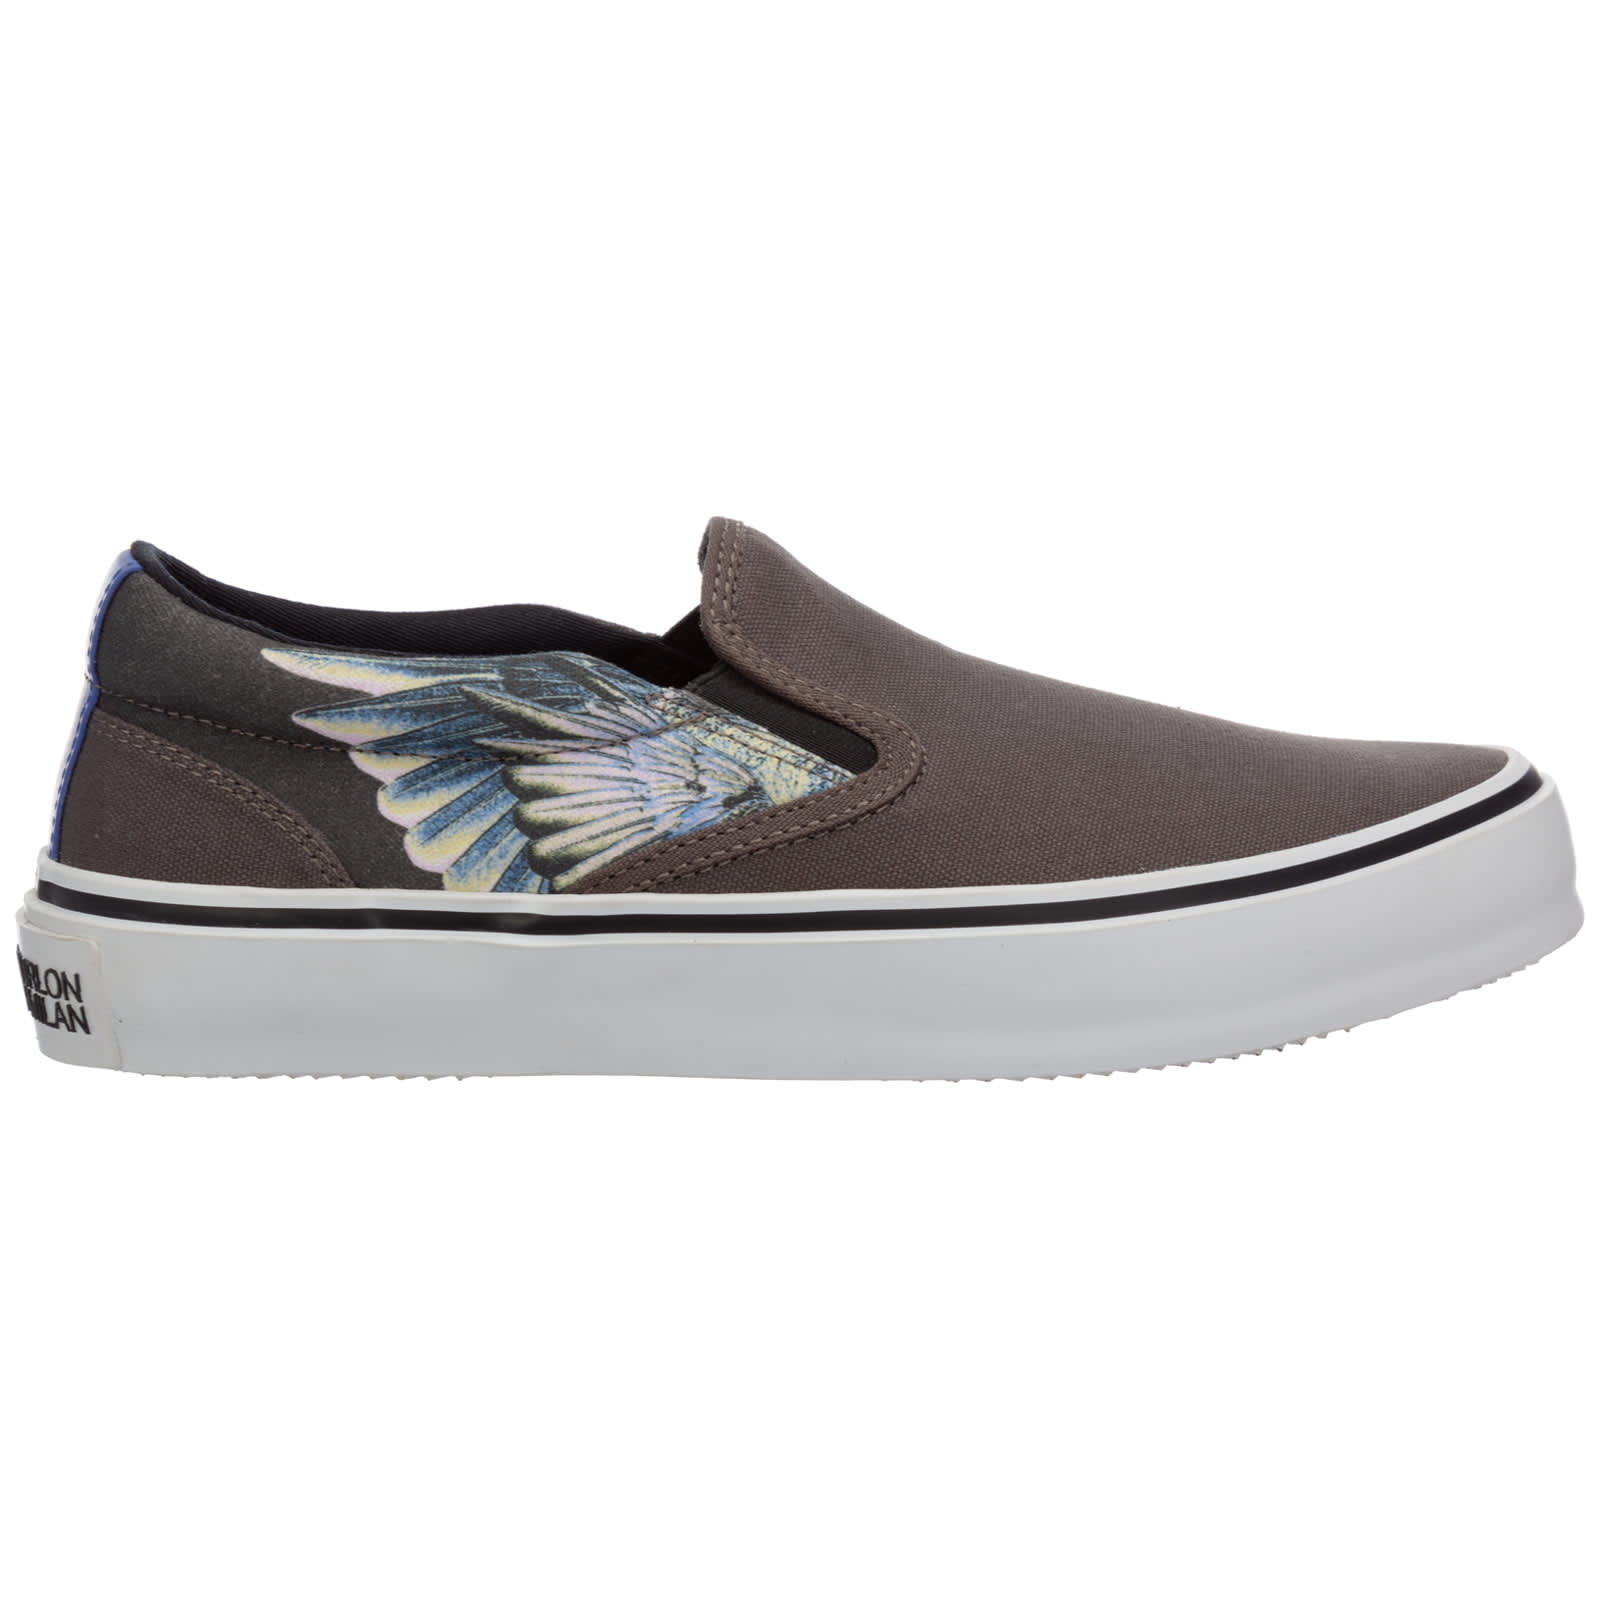 Wings Slip-on Shoes